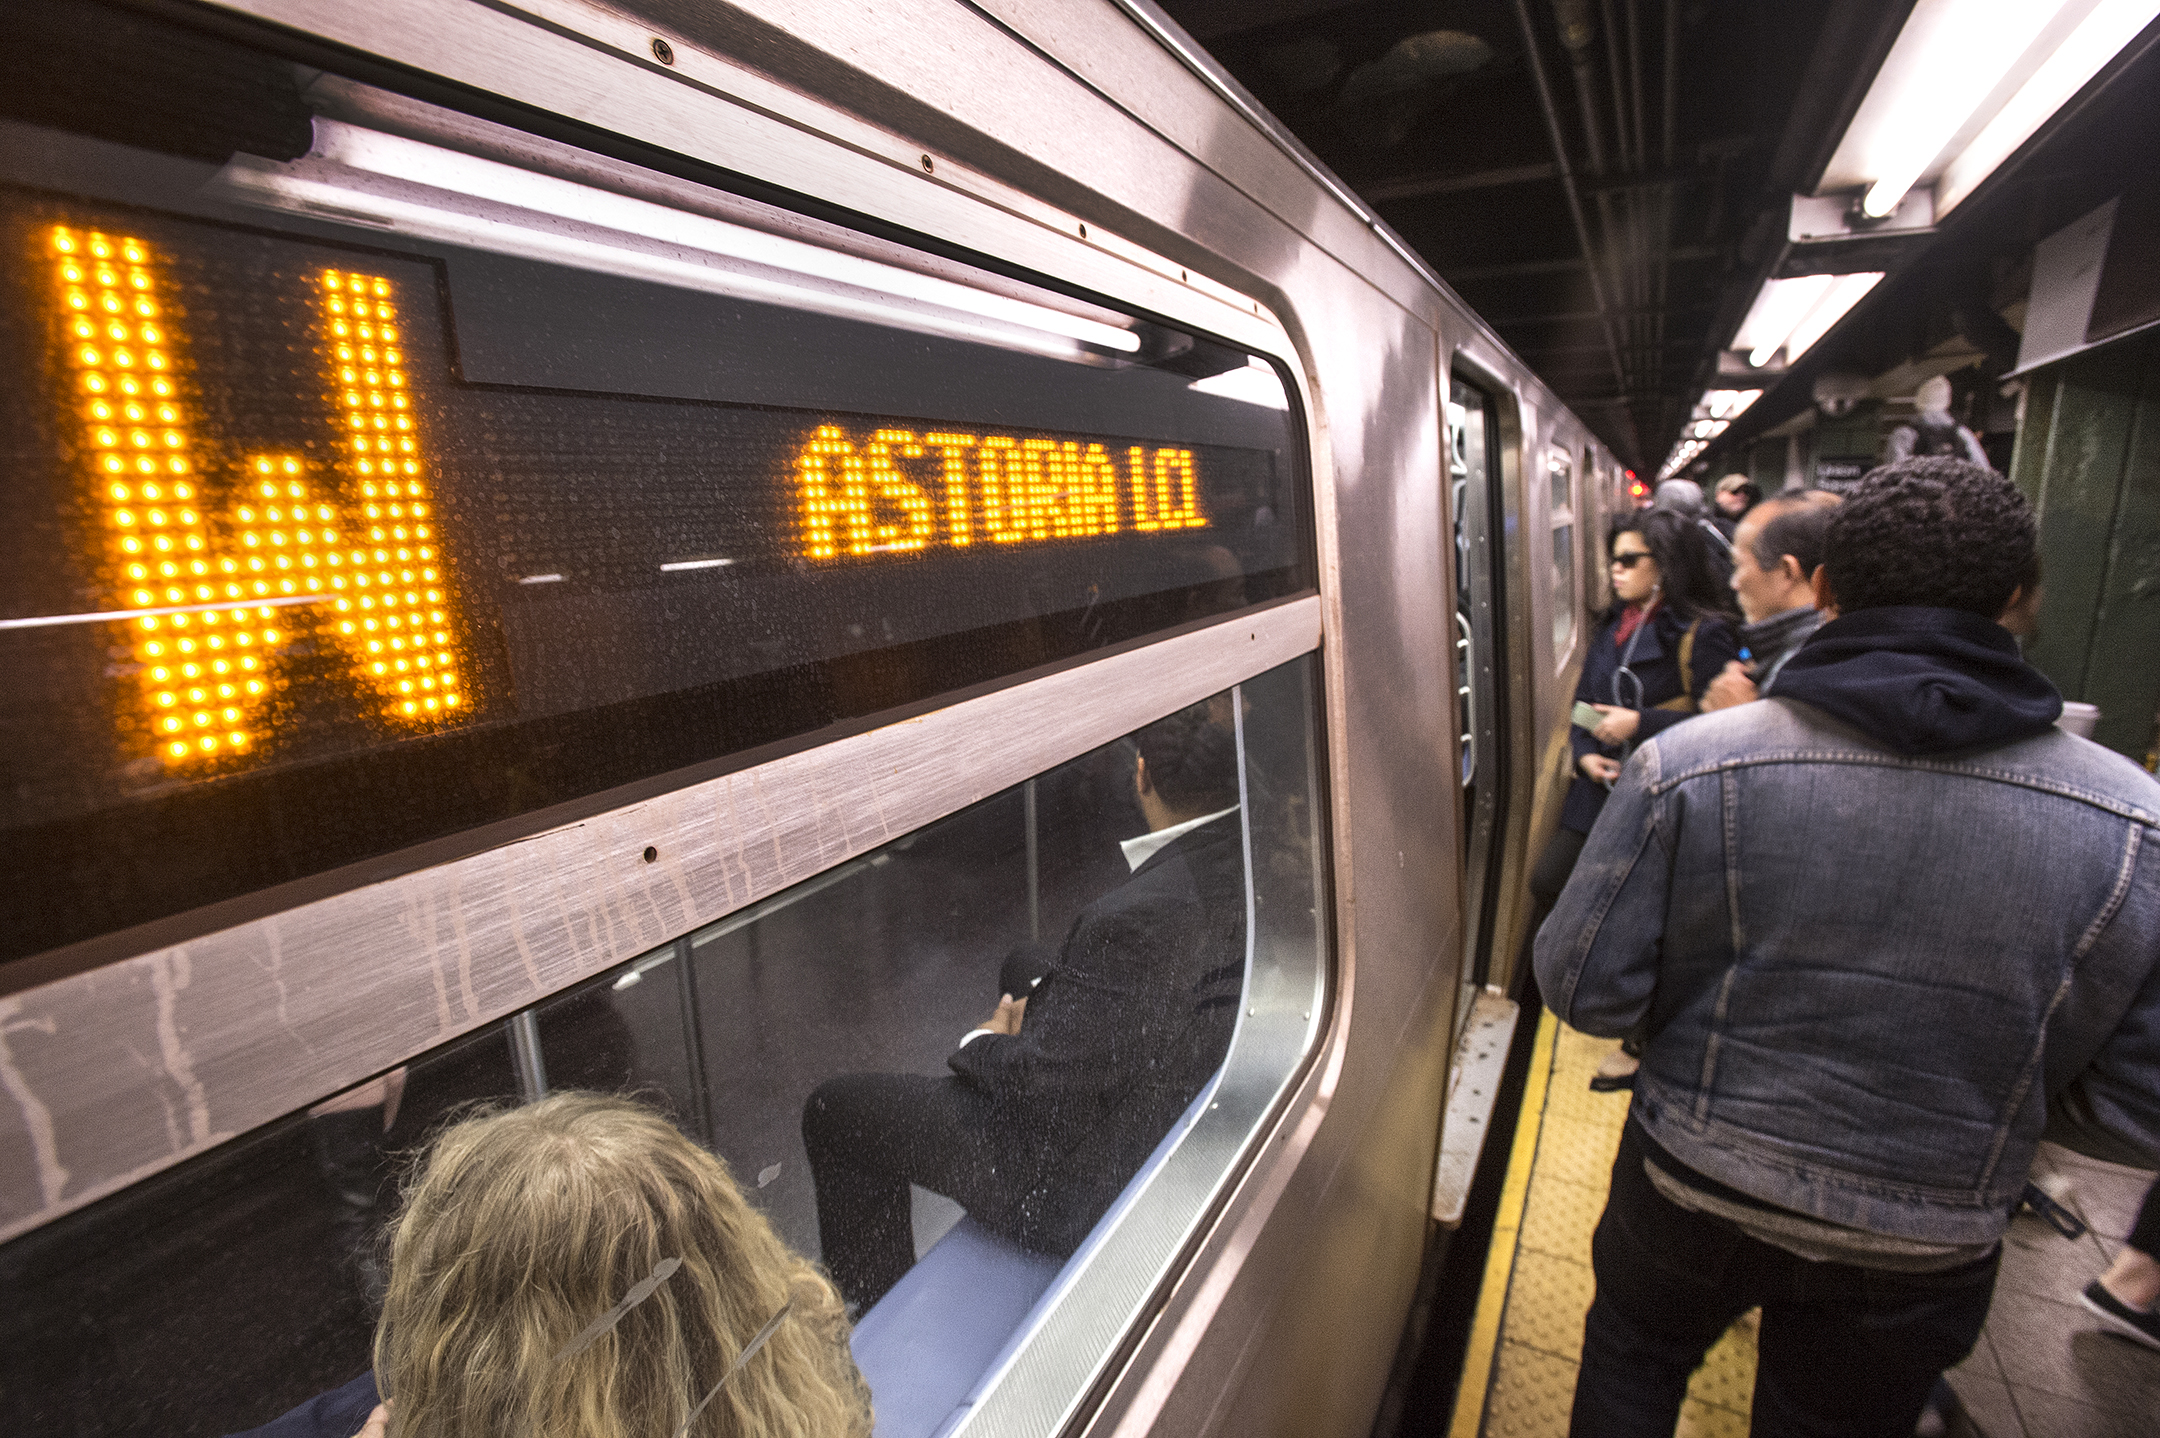 The W train stands to move faster thanks to the Save Safe Seconds campaign. Photo via the MTA/Patrick Cashin.